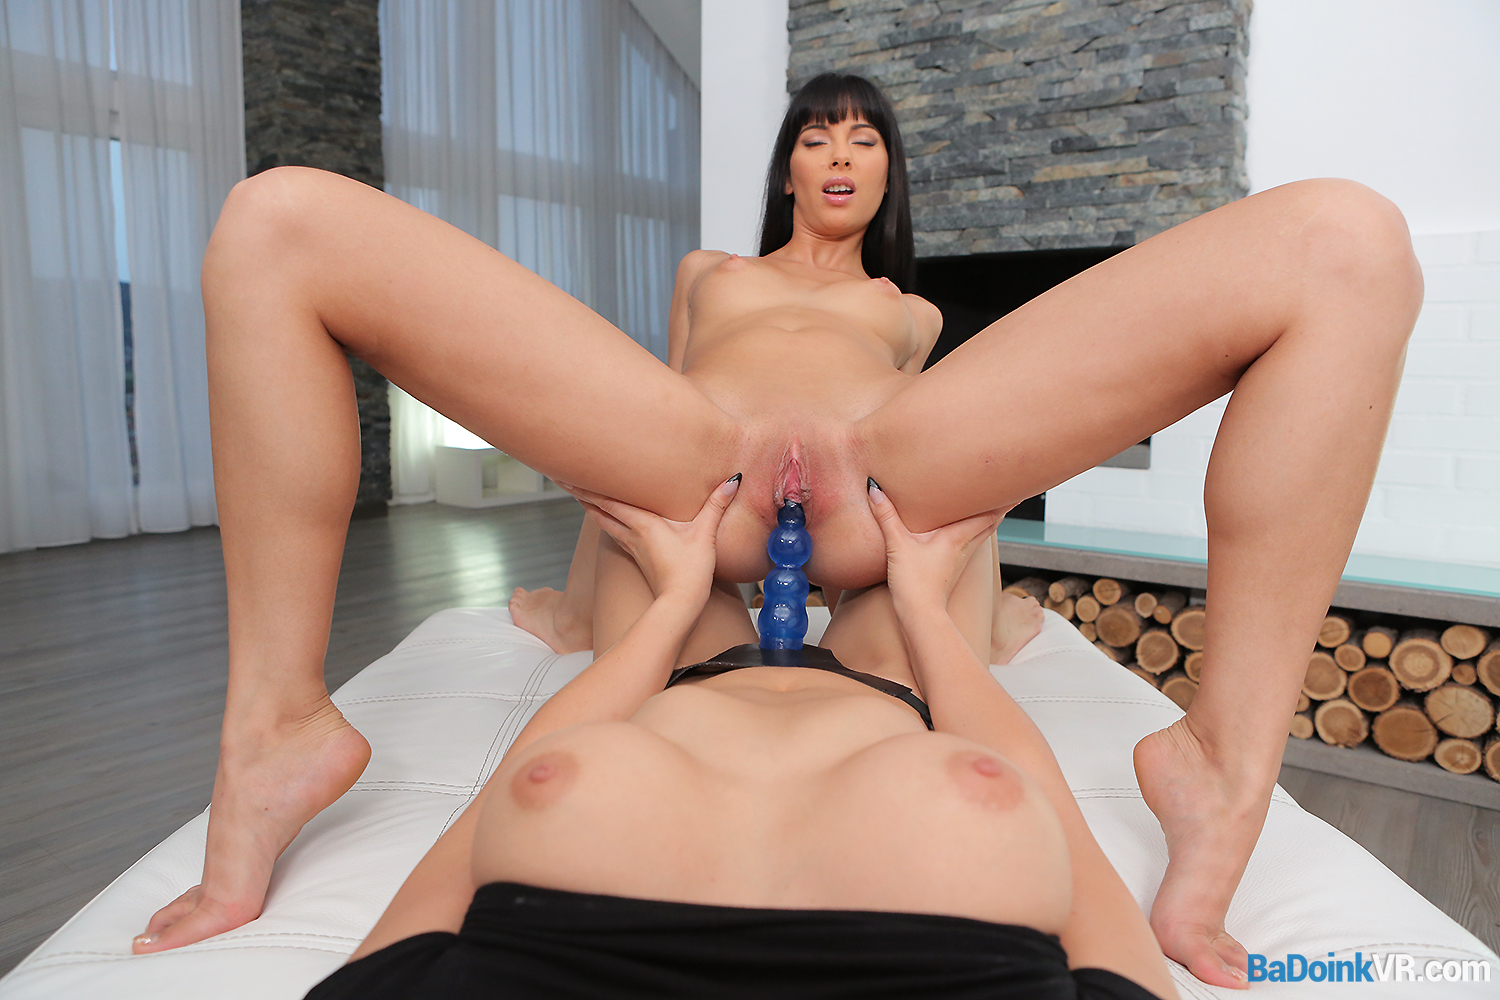 with a lesbian having sex dildo Hot